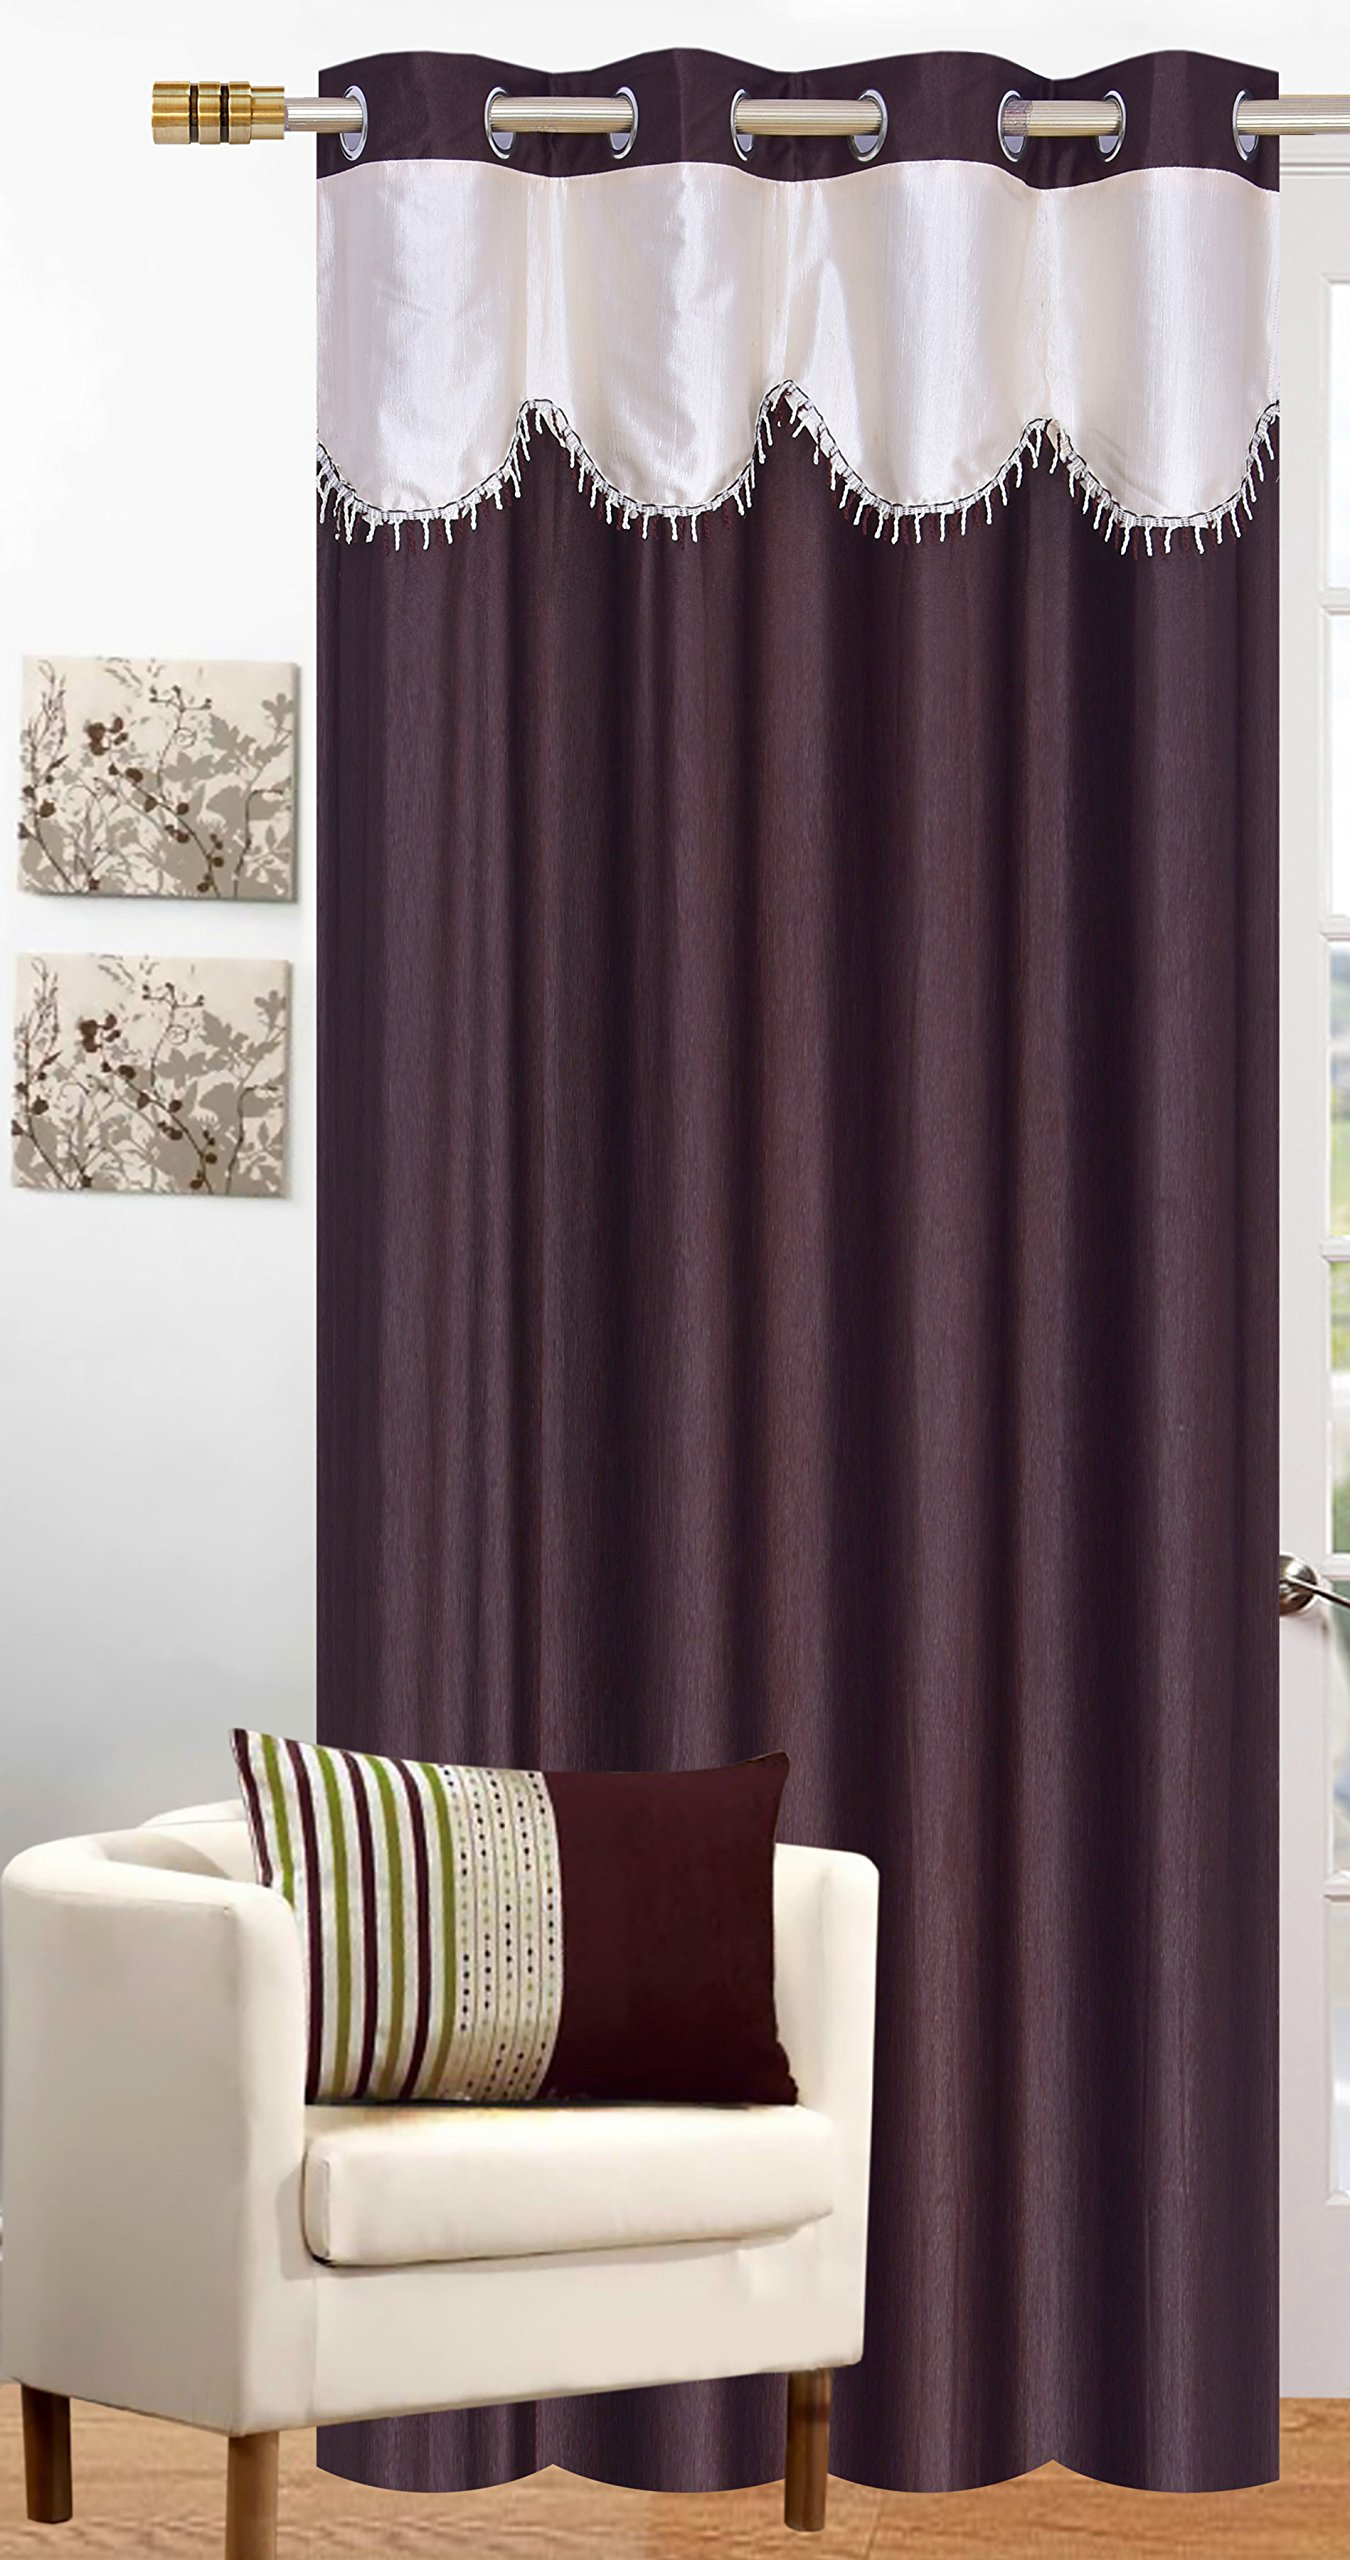 Honey Traders Plain Eyelet Lace Door Curtains of 1 Piece - 7ft (Brown, 4 x 7) (B07X7632JW) Amazon Price History, Amazon Price Tracker